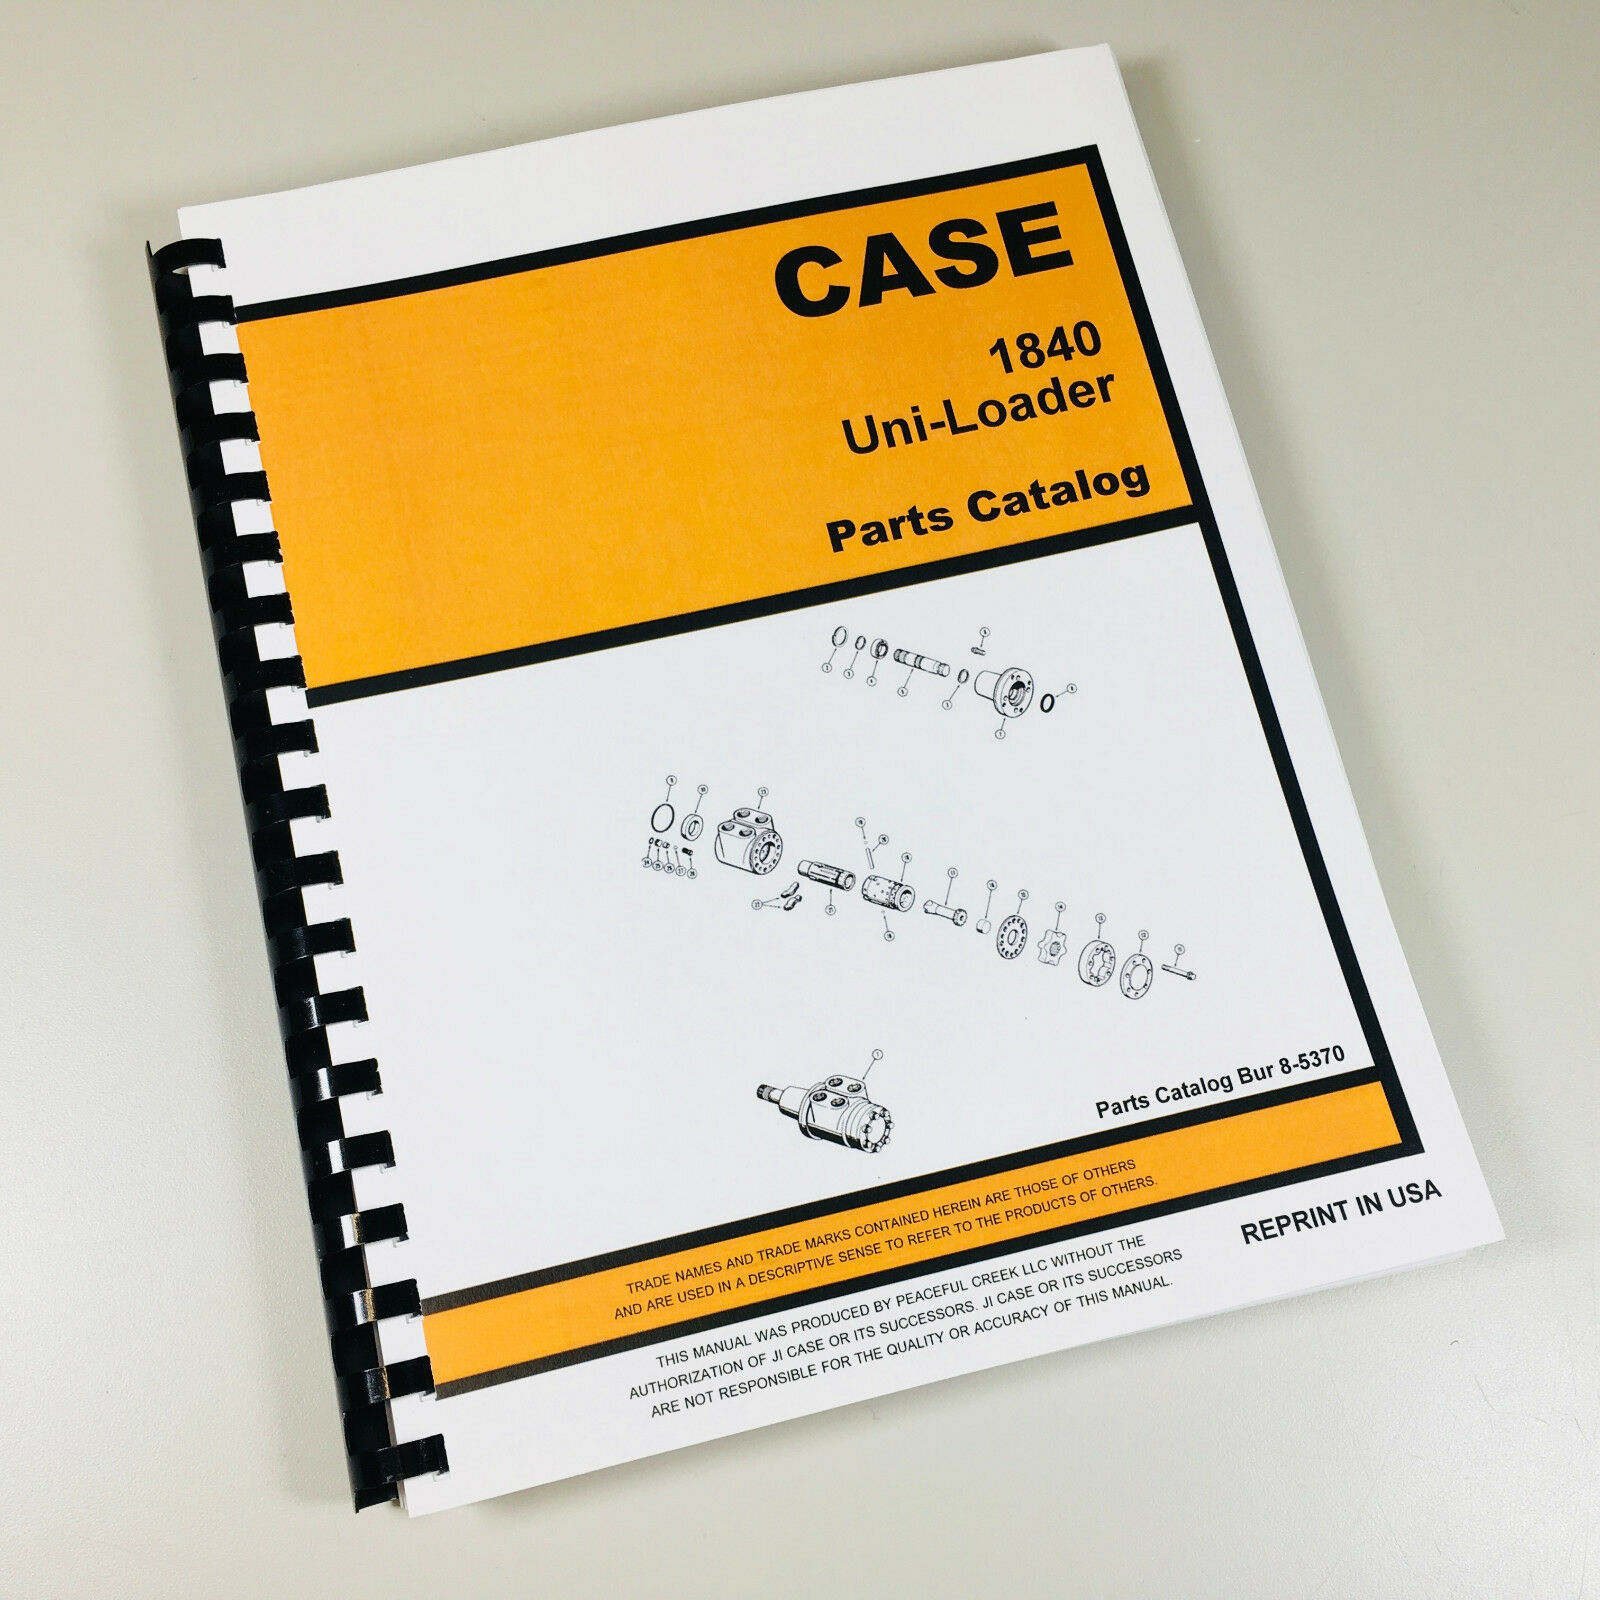 Case 1840 Uni Loader Parts Manual Catalog Skid Steer Assembly Exploded  Views 1 of 8FREE Shipping ...